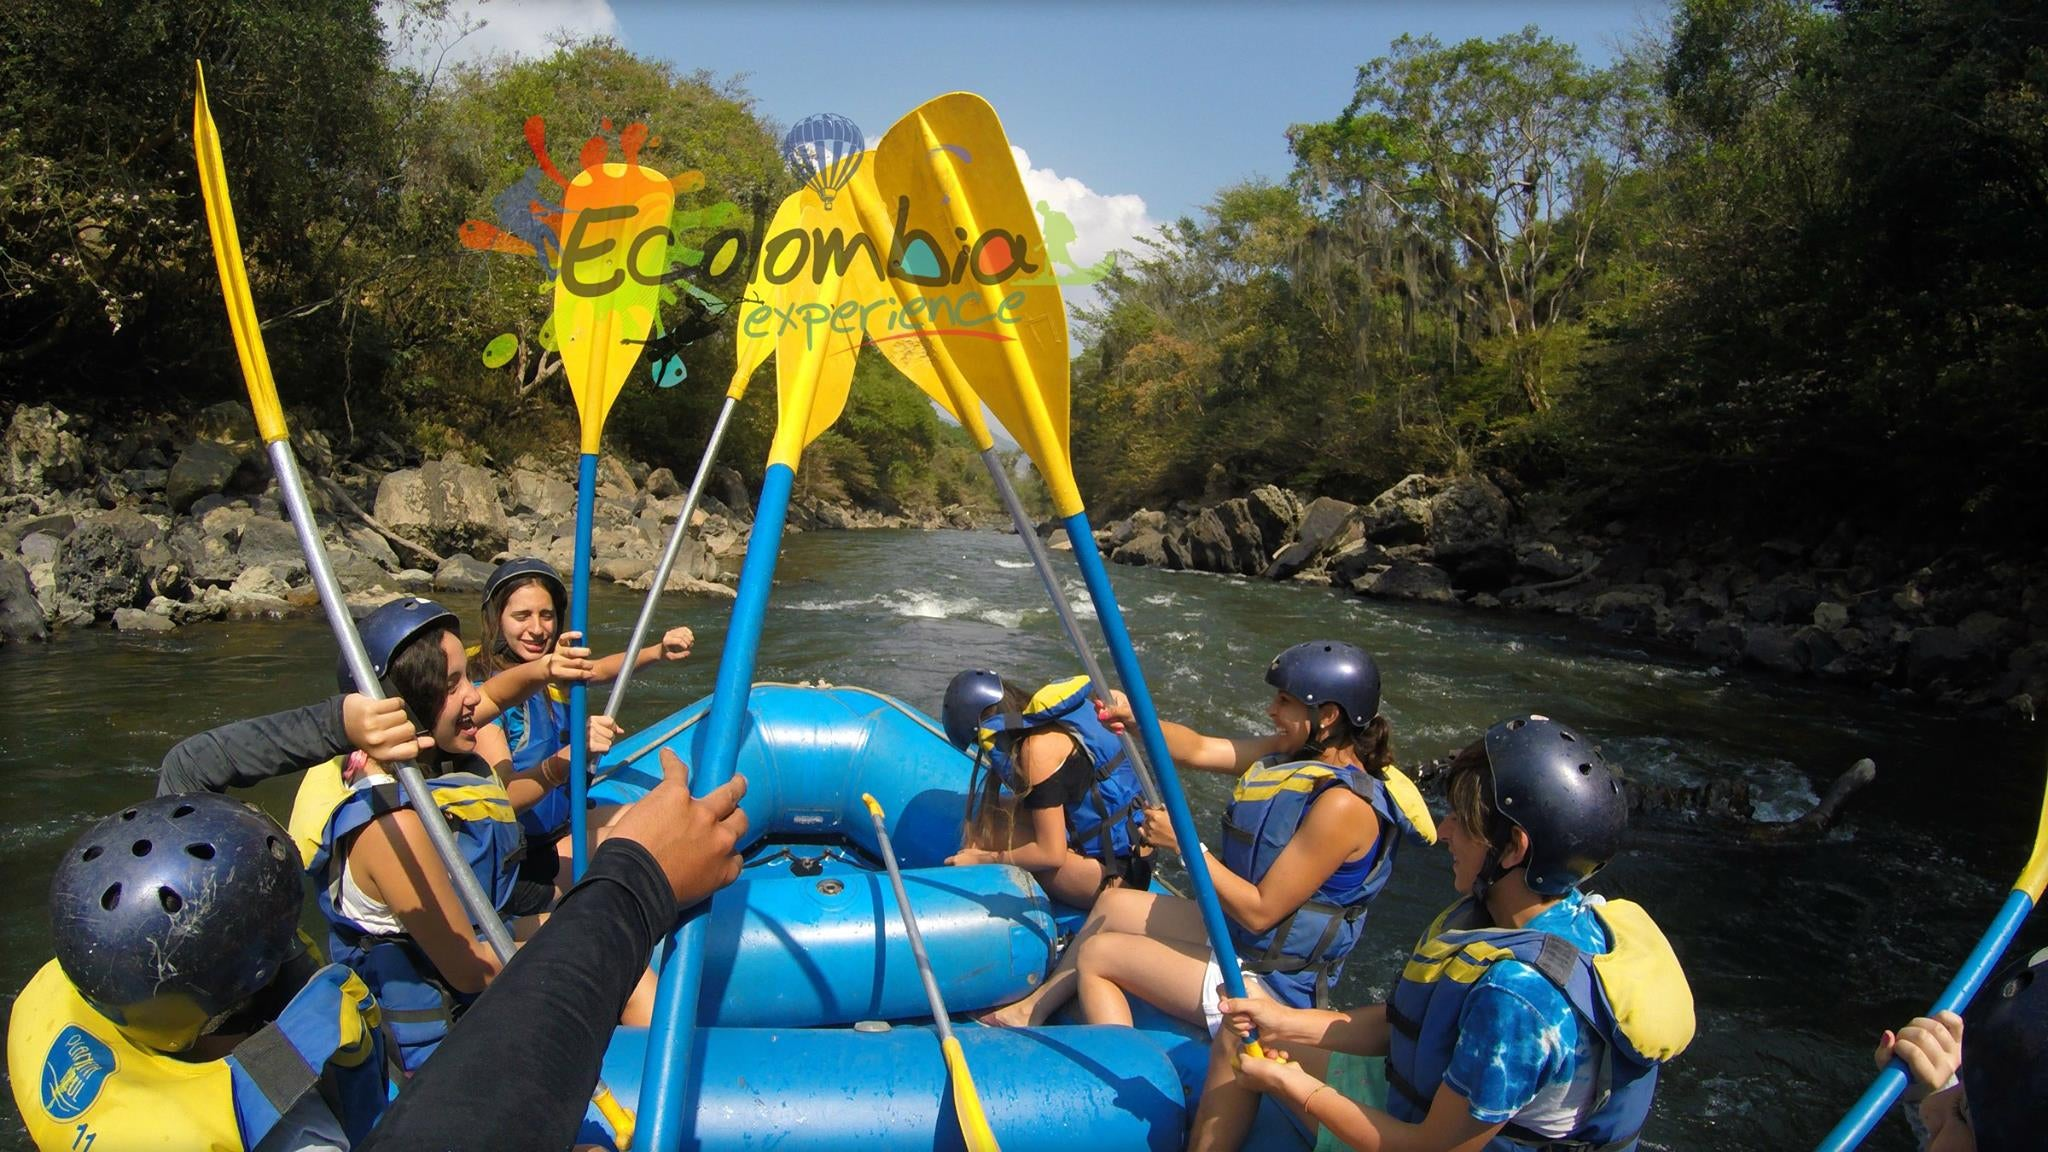 Sports in Ecolombia experience